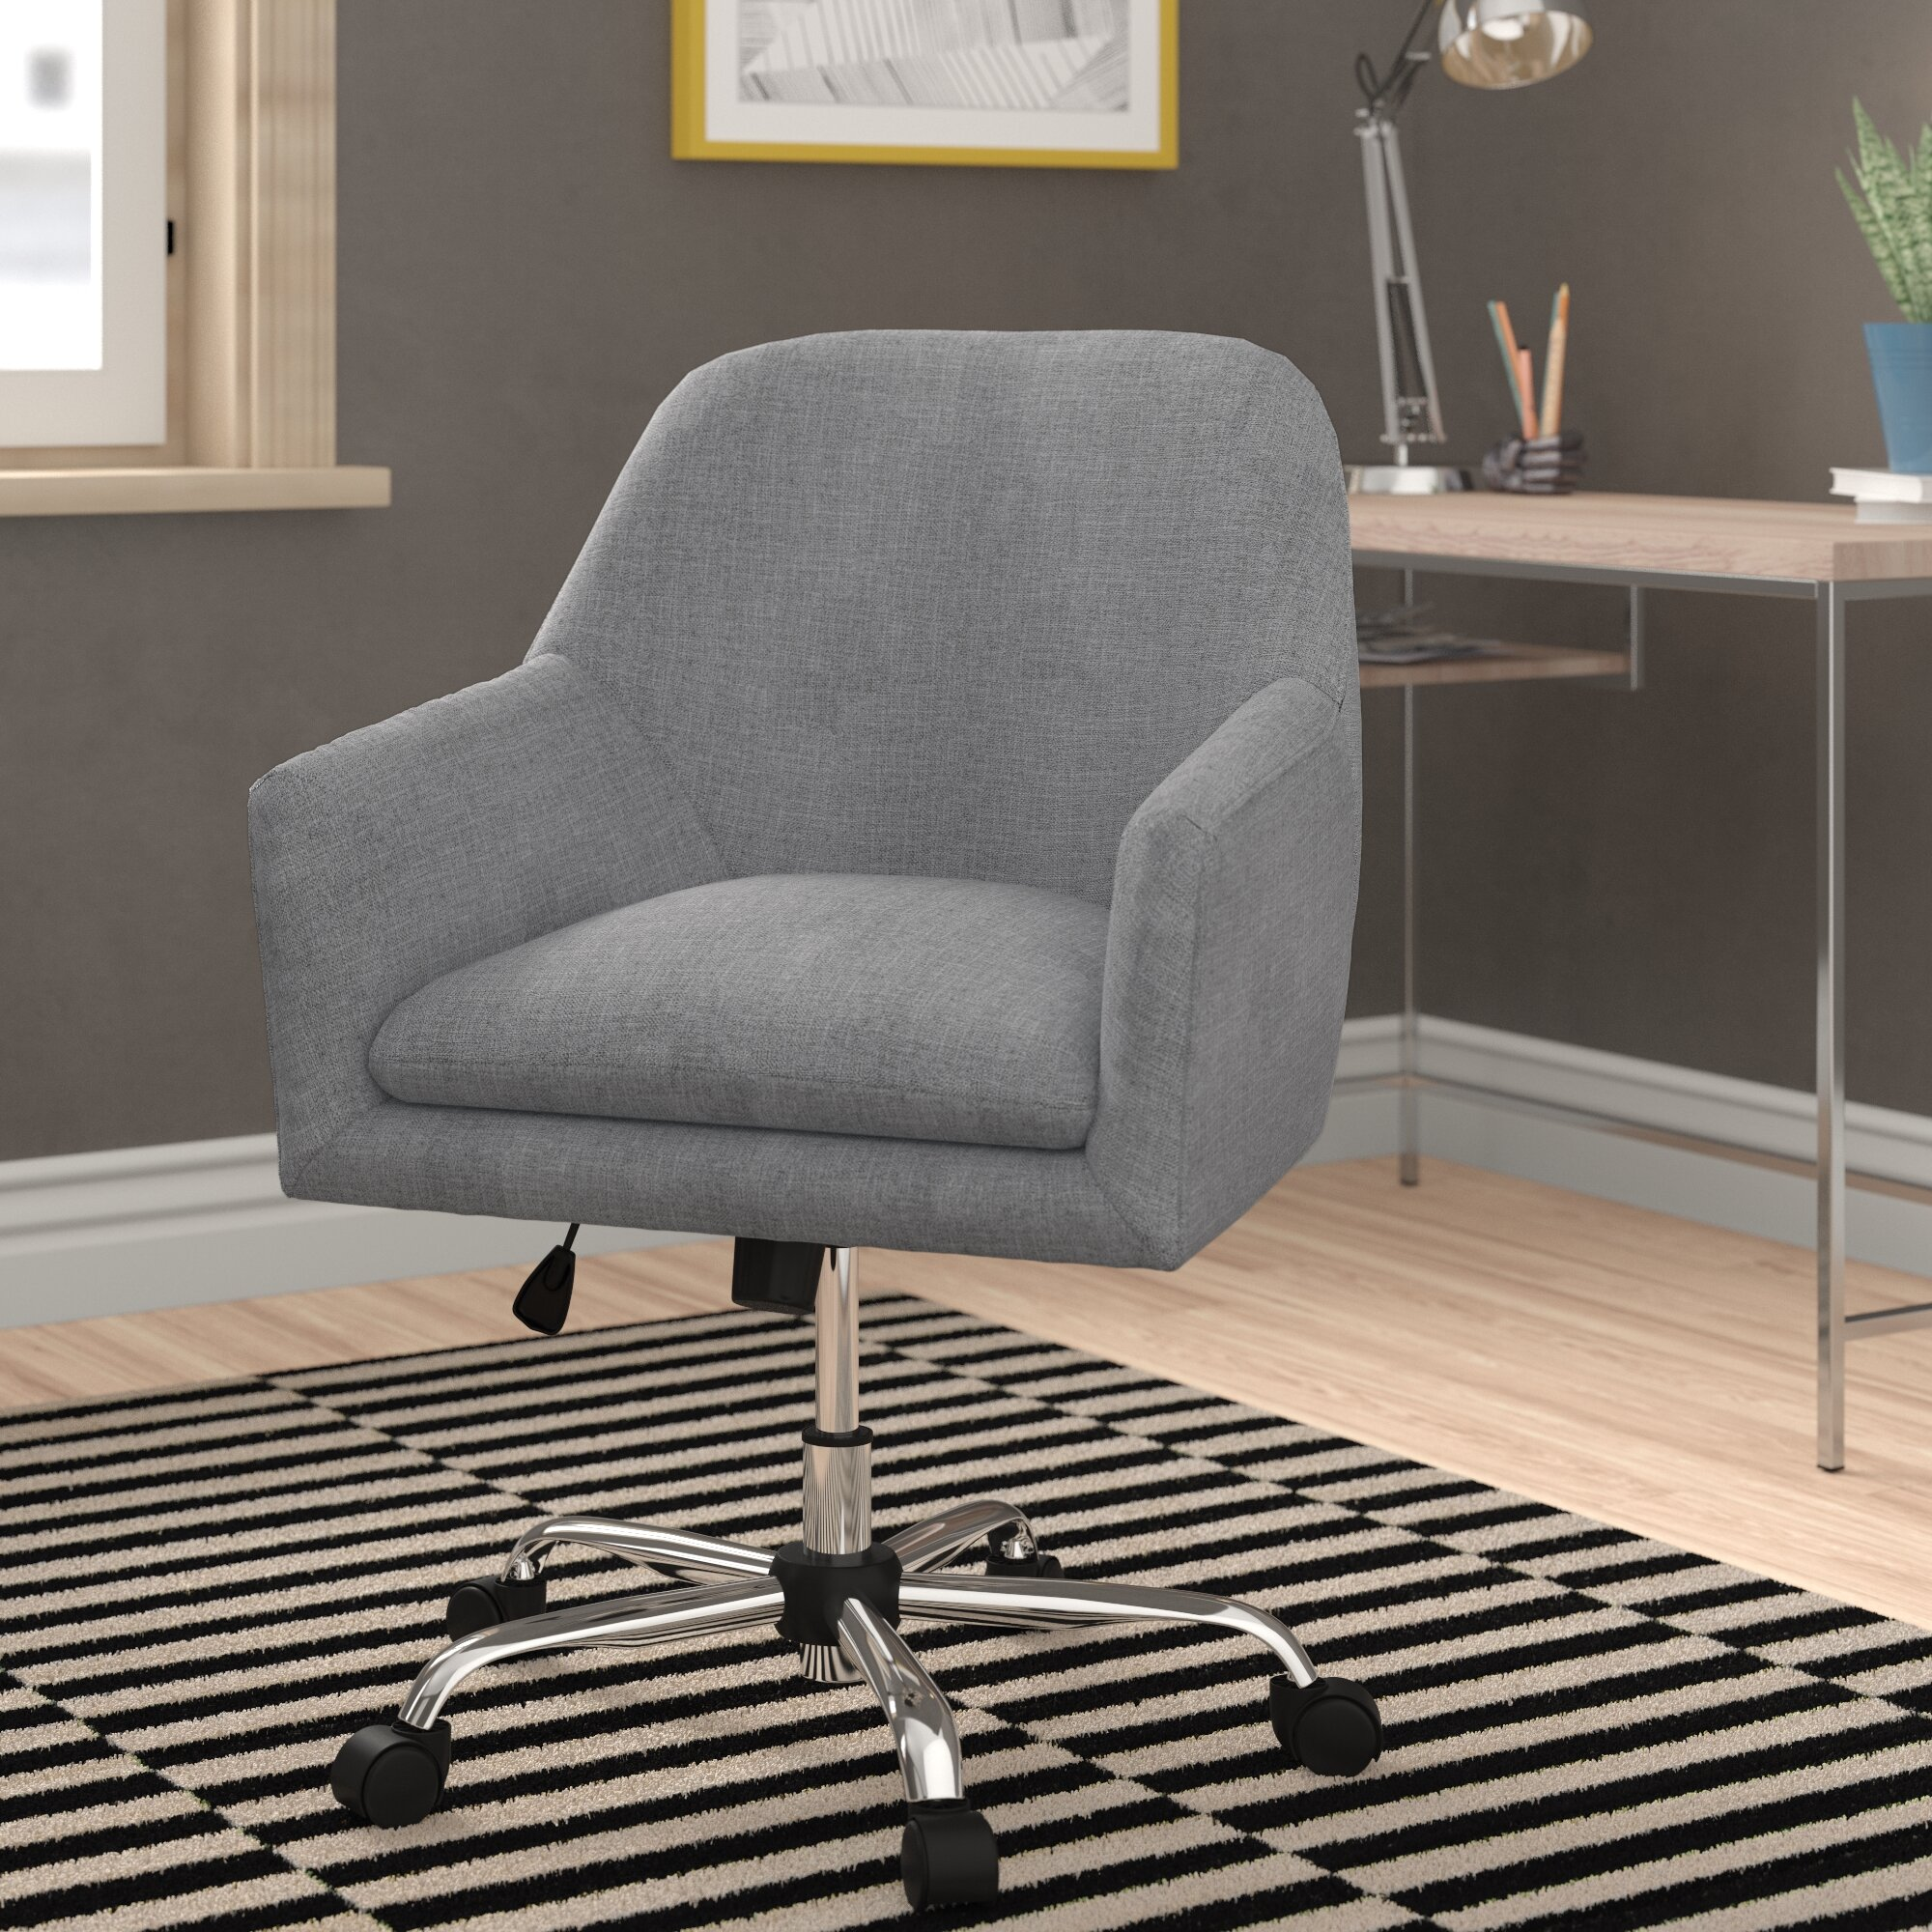 Cairo task chair for sale